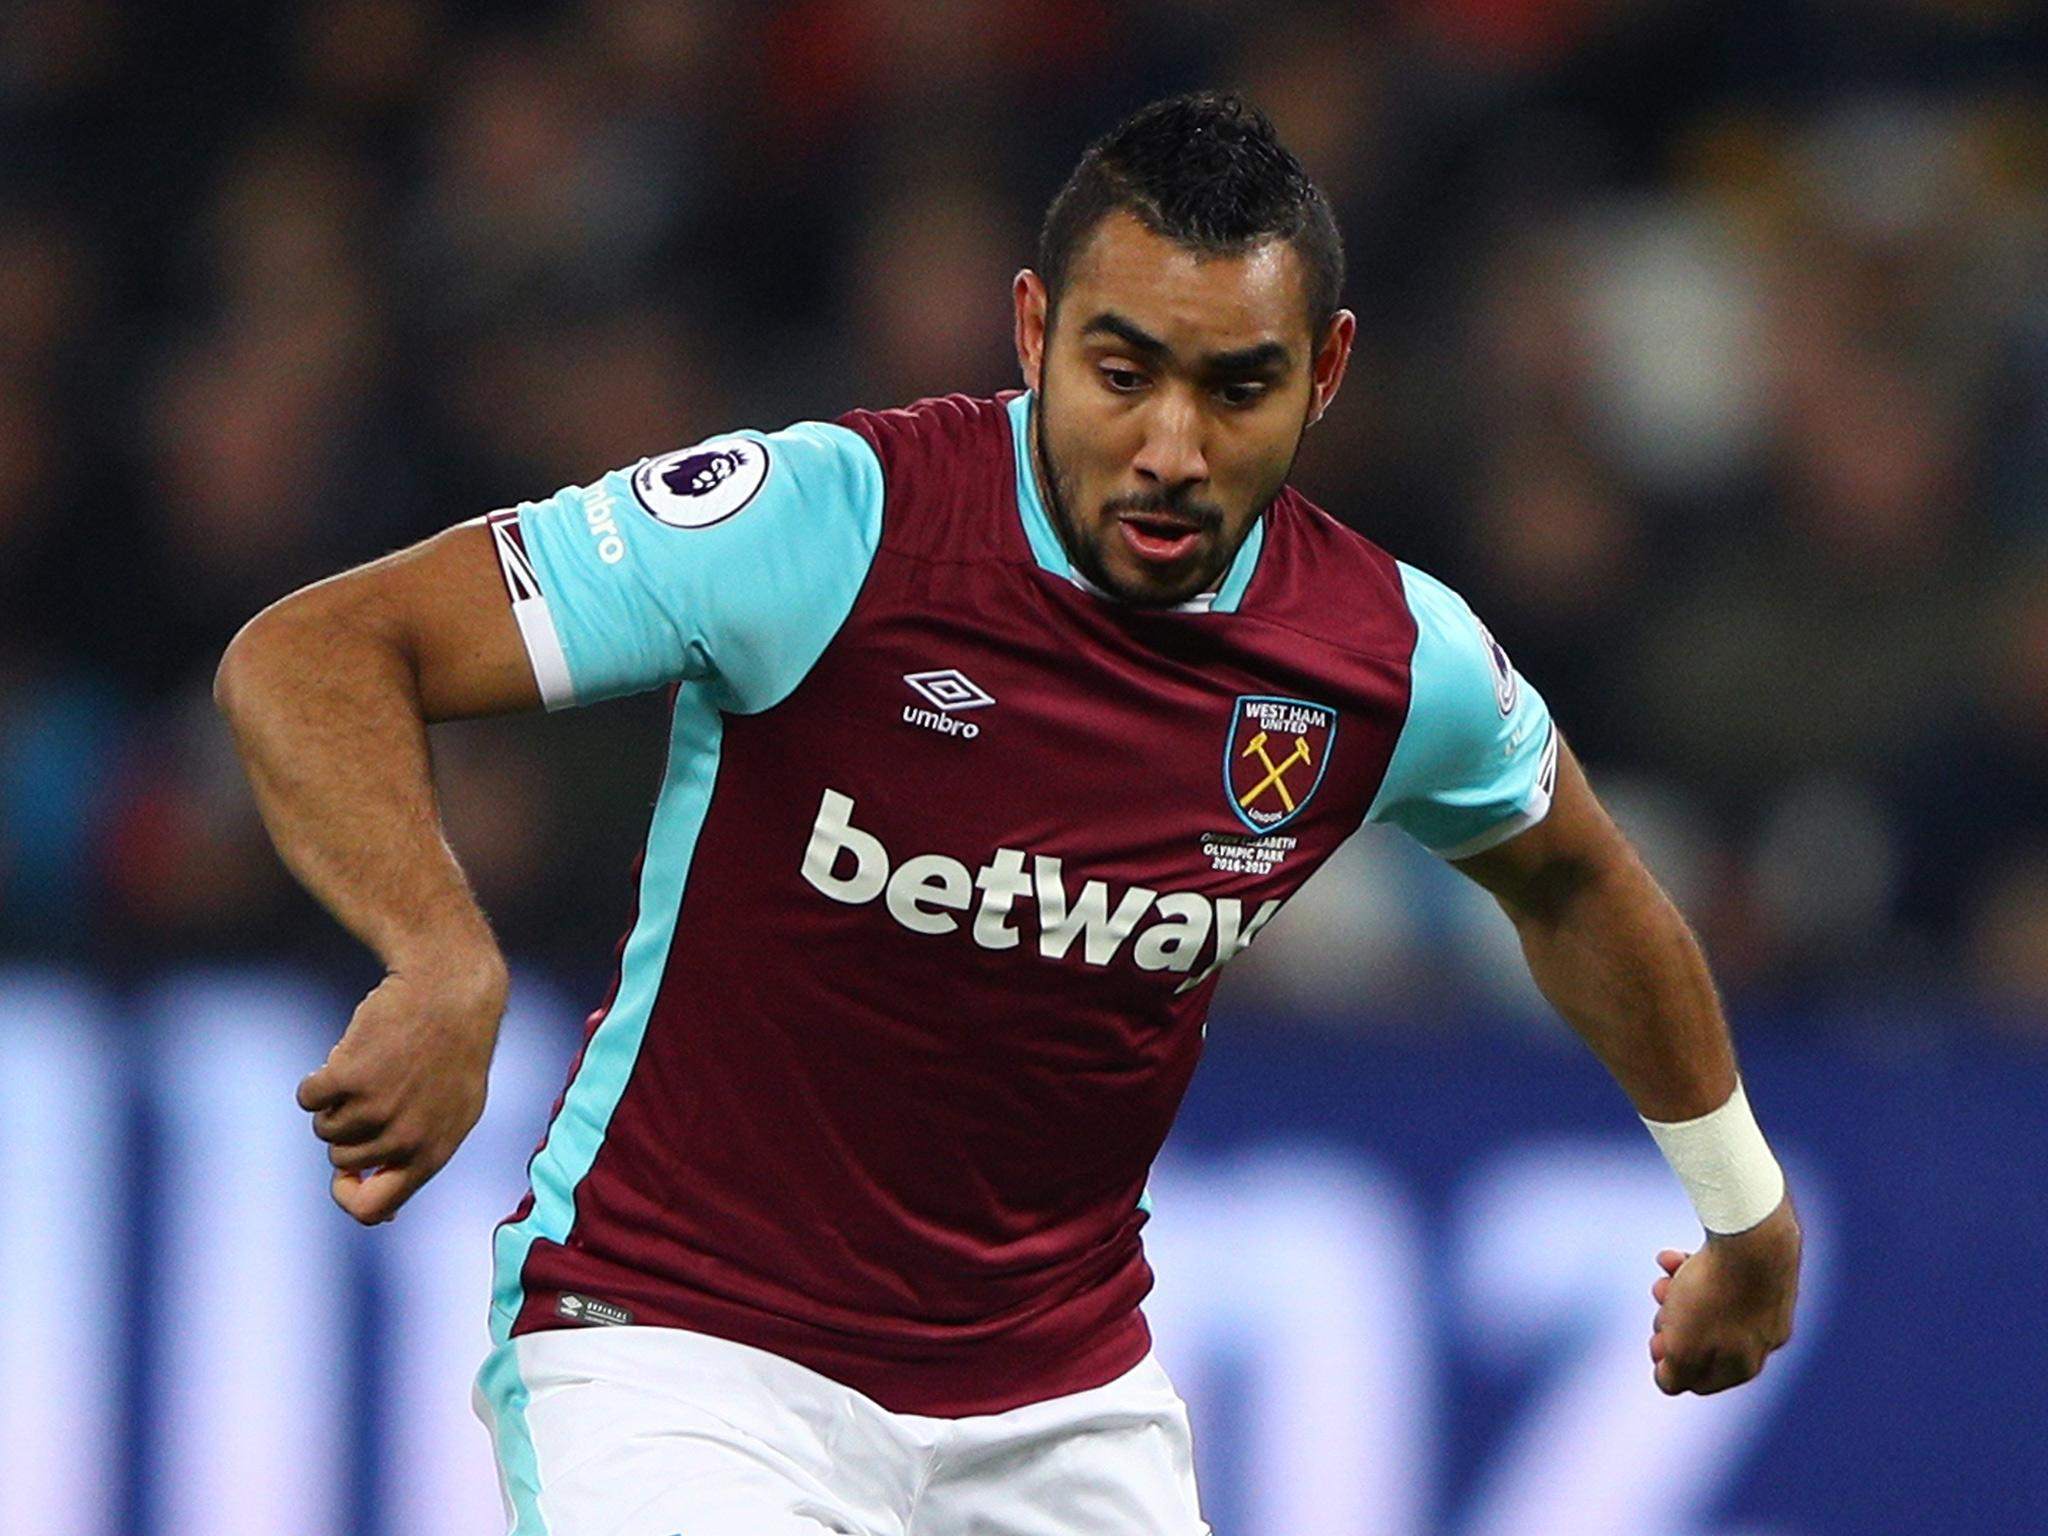 West Ham demand more than £35m for Dimitri Payet as Frenchman